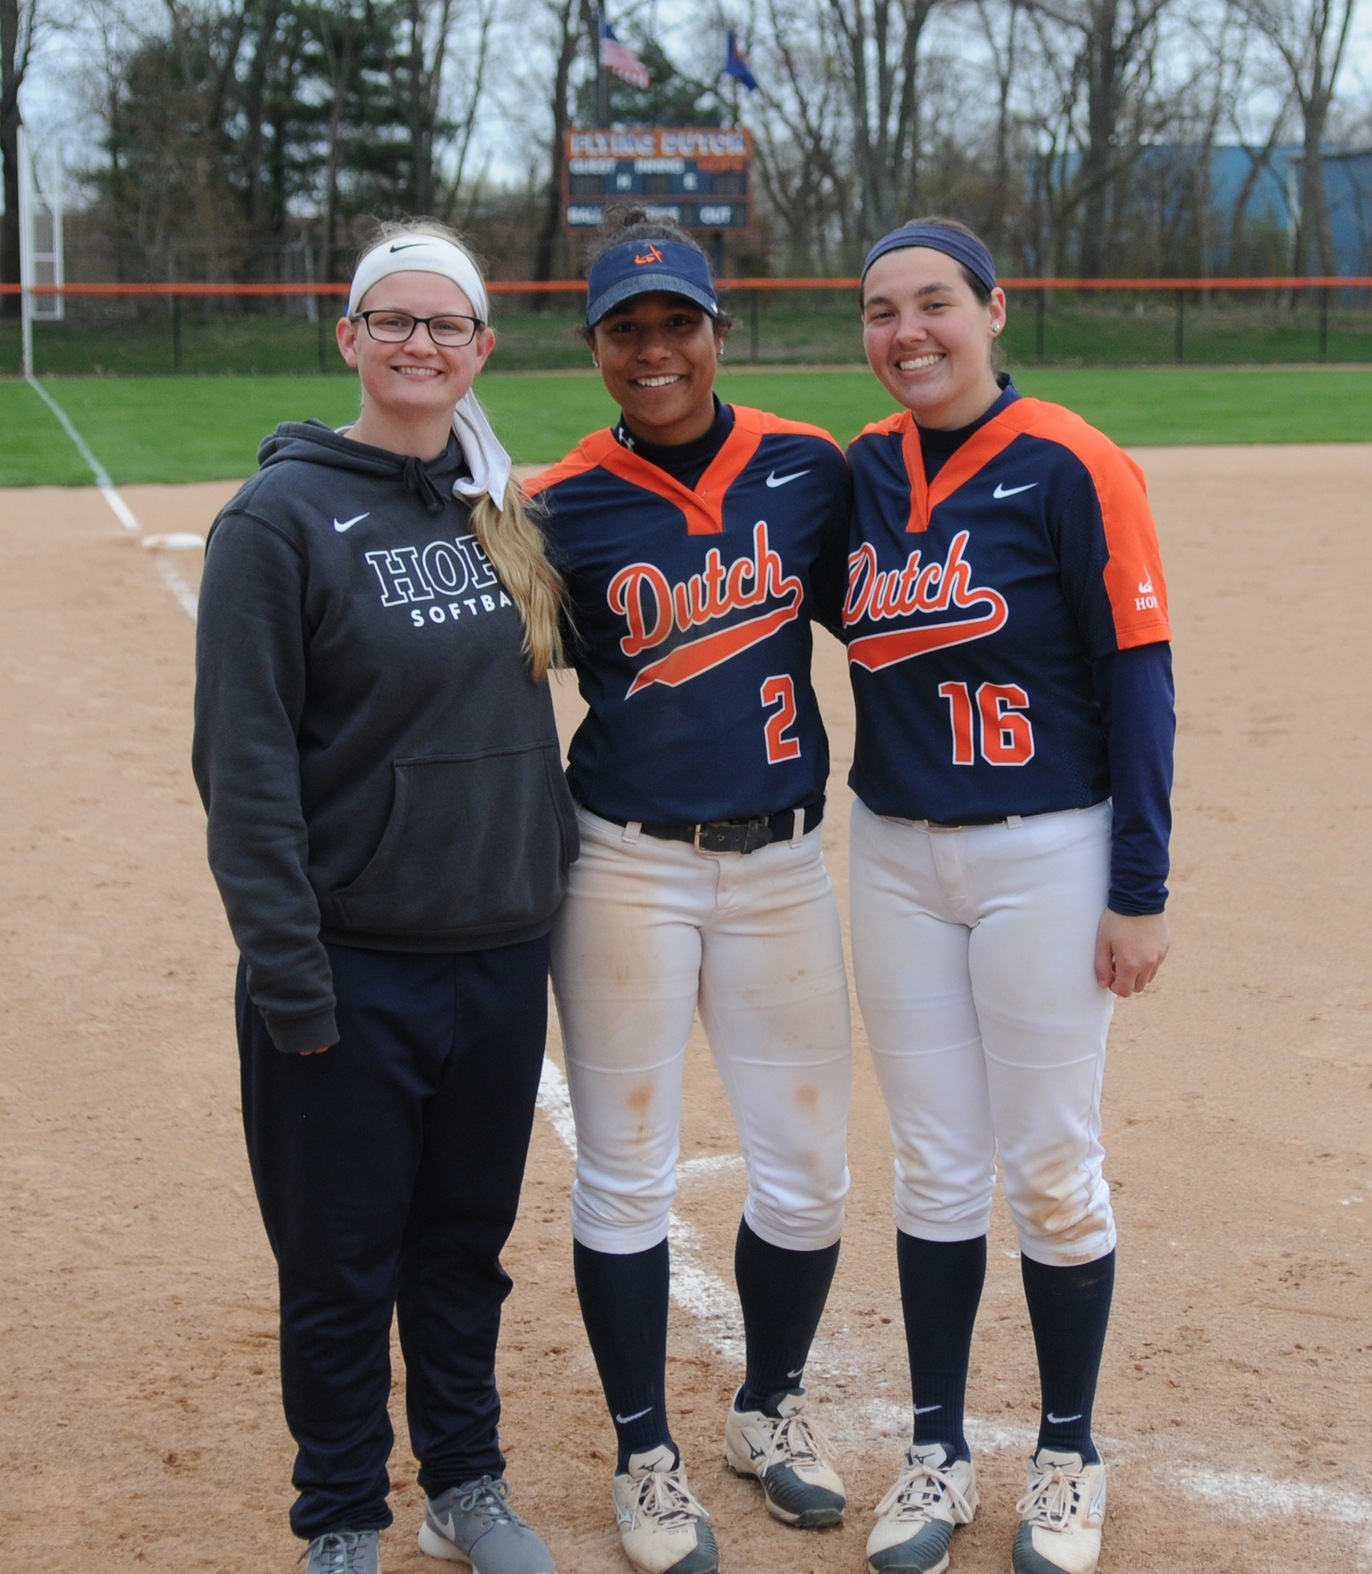 Hope softball seniors Ashley Ables, Noelle Jackson and Shay Pinhey pose for a picture together on home plate at Wolters Stadium.